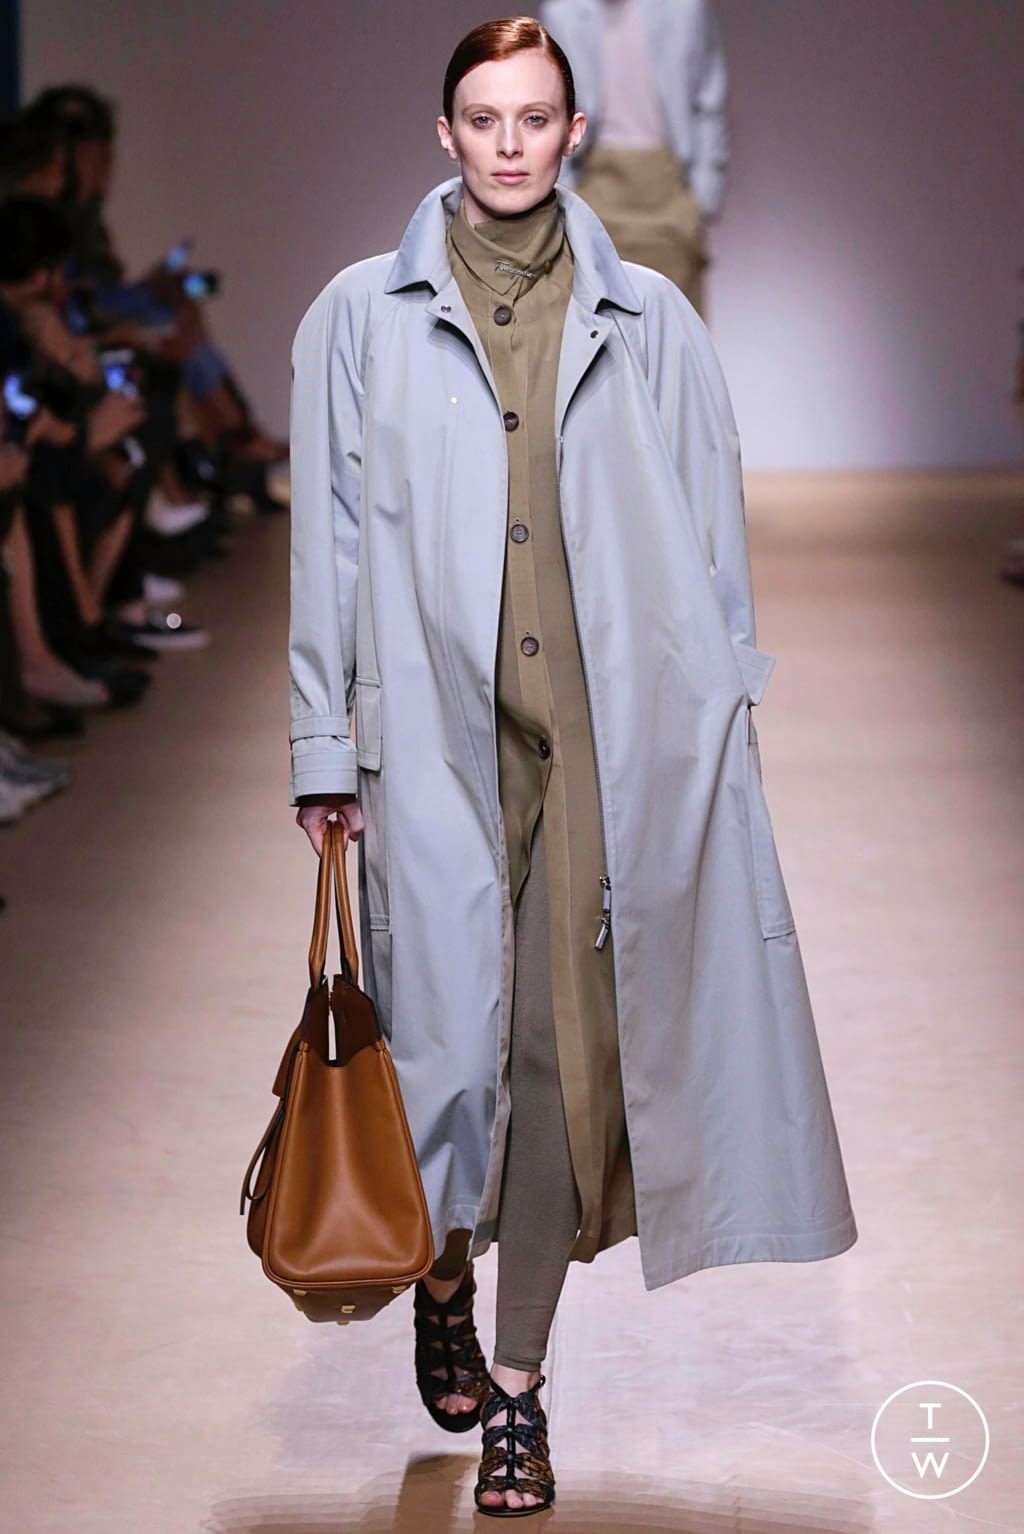 Fashion Week Milan Spring/Summer 2019 look 22 de la collection Salvatore Ferragamo womenswear